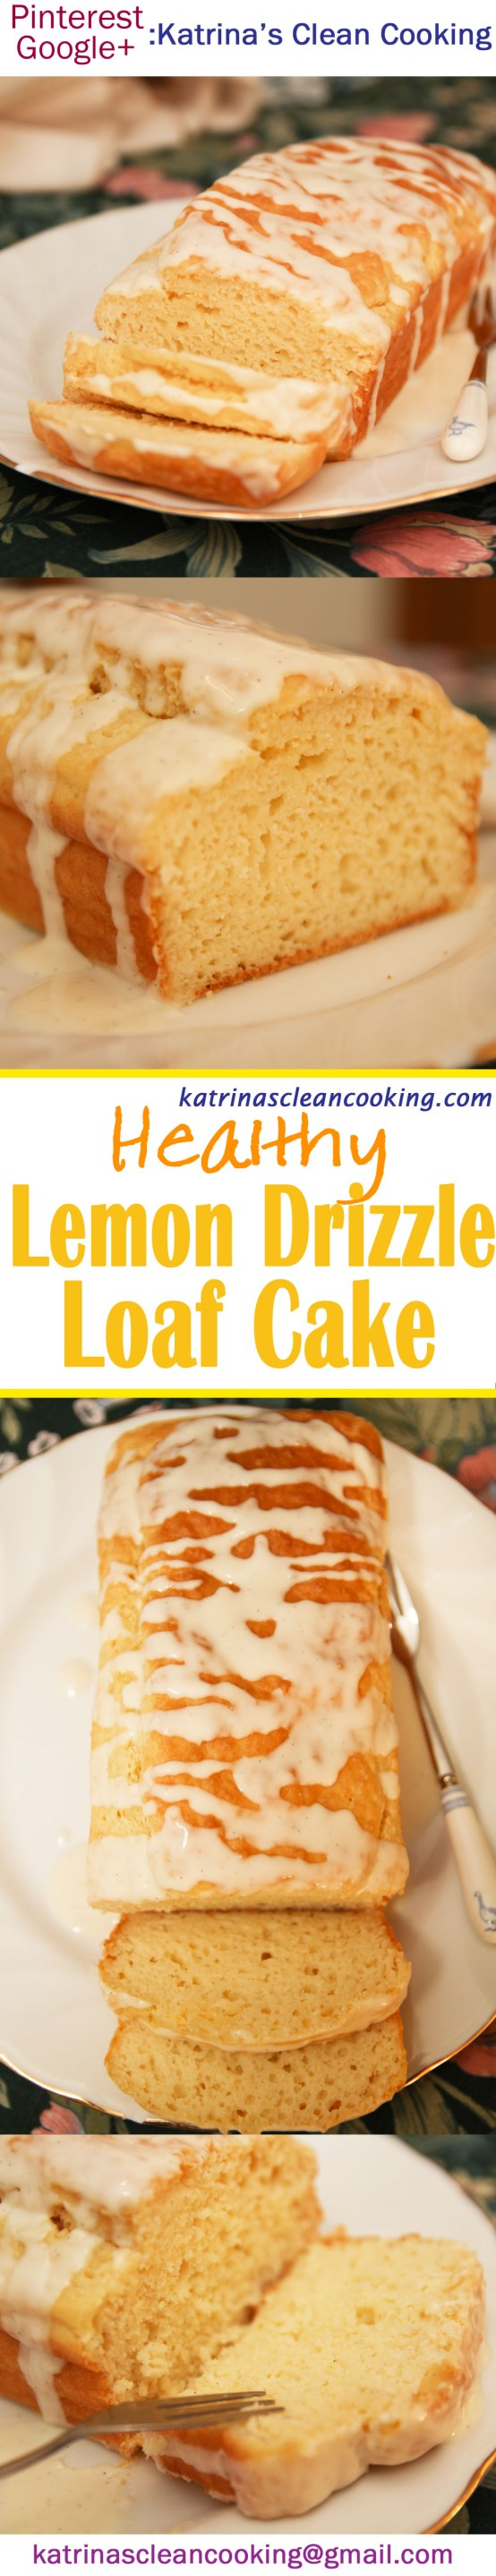 Healthy Lemon Drizzle Loaf Cake #healthy #lemoncake #glutenfree #refinedsugarfree